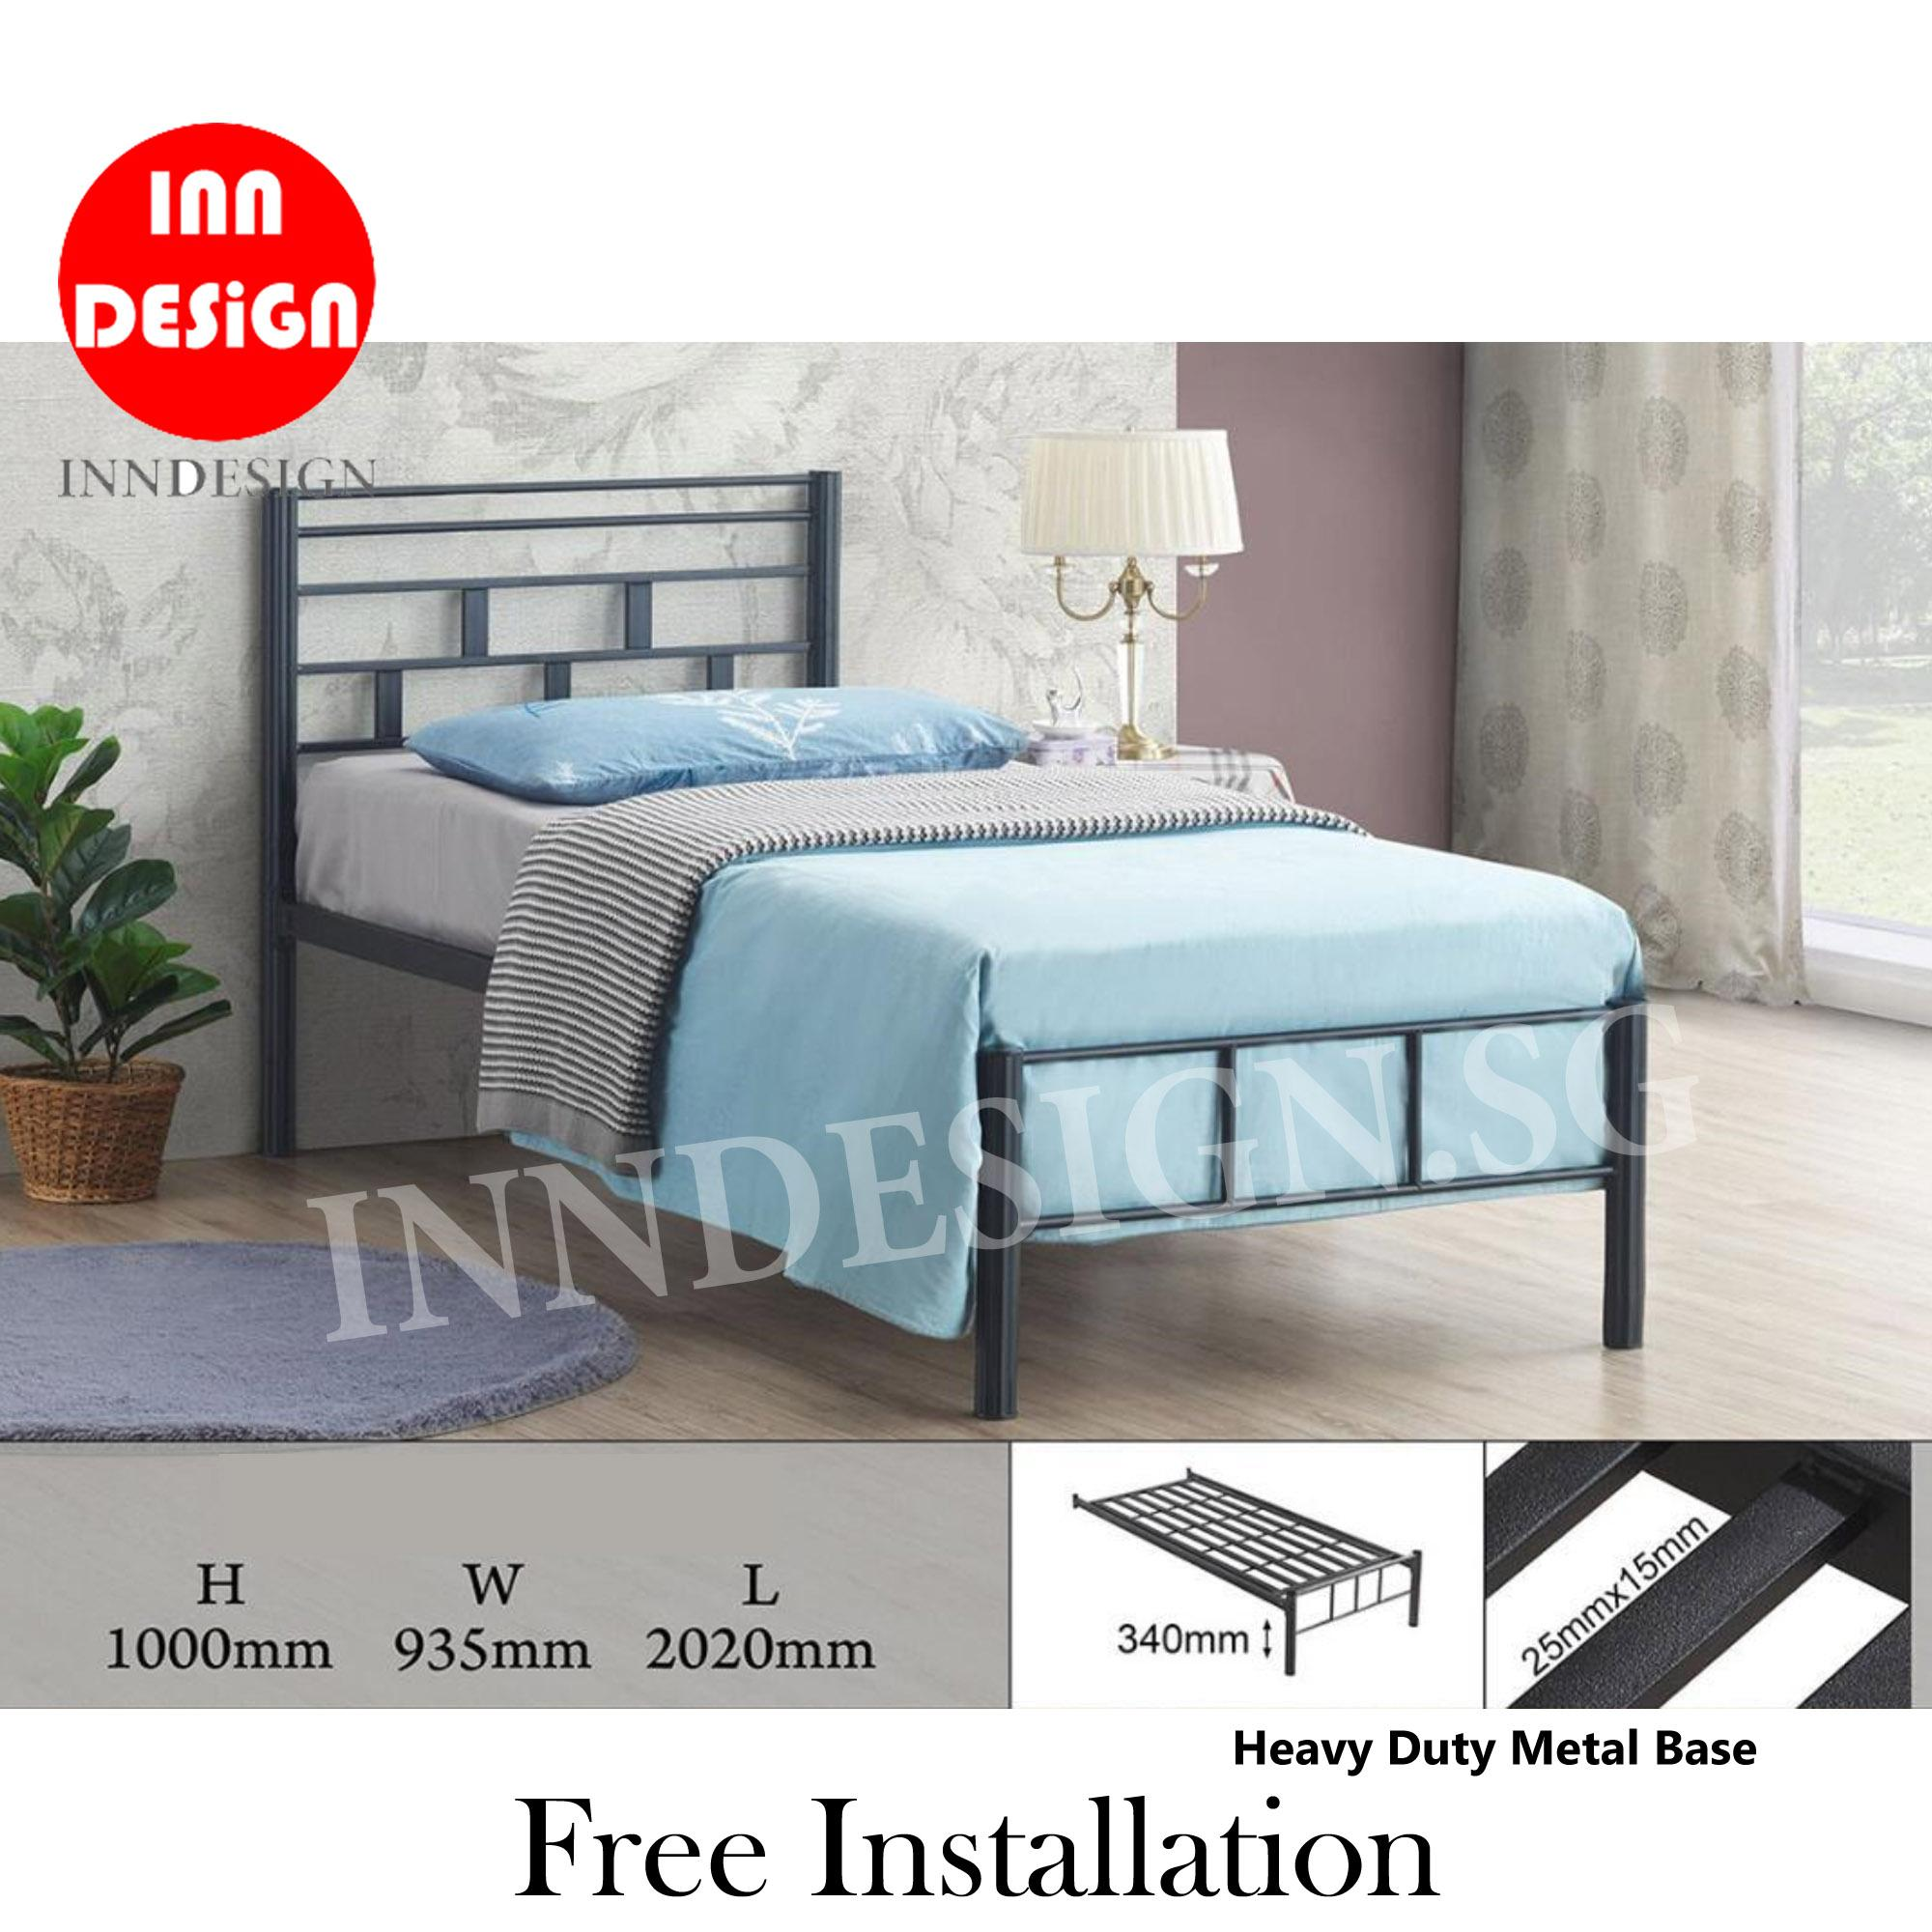 [NEW ARRIVAL] [6 Months Warranty] Emi Single Heavy Duty Metal Bedframe / Bed (Free Delivery and Installation)